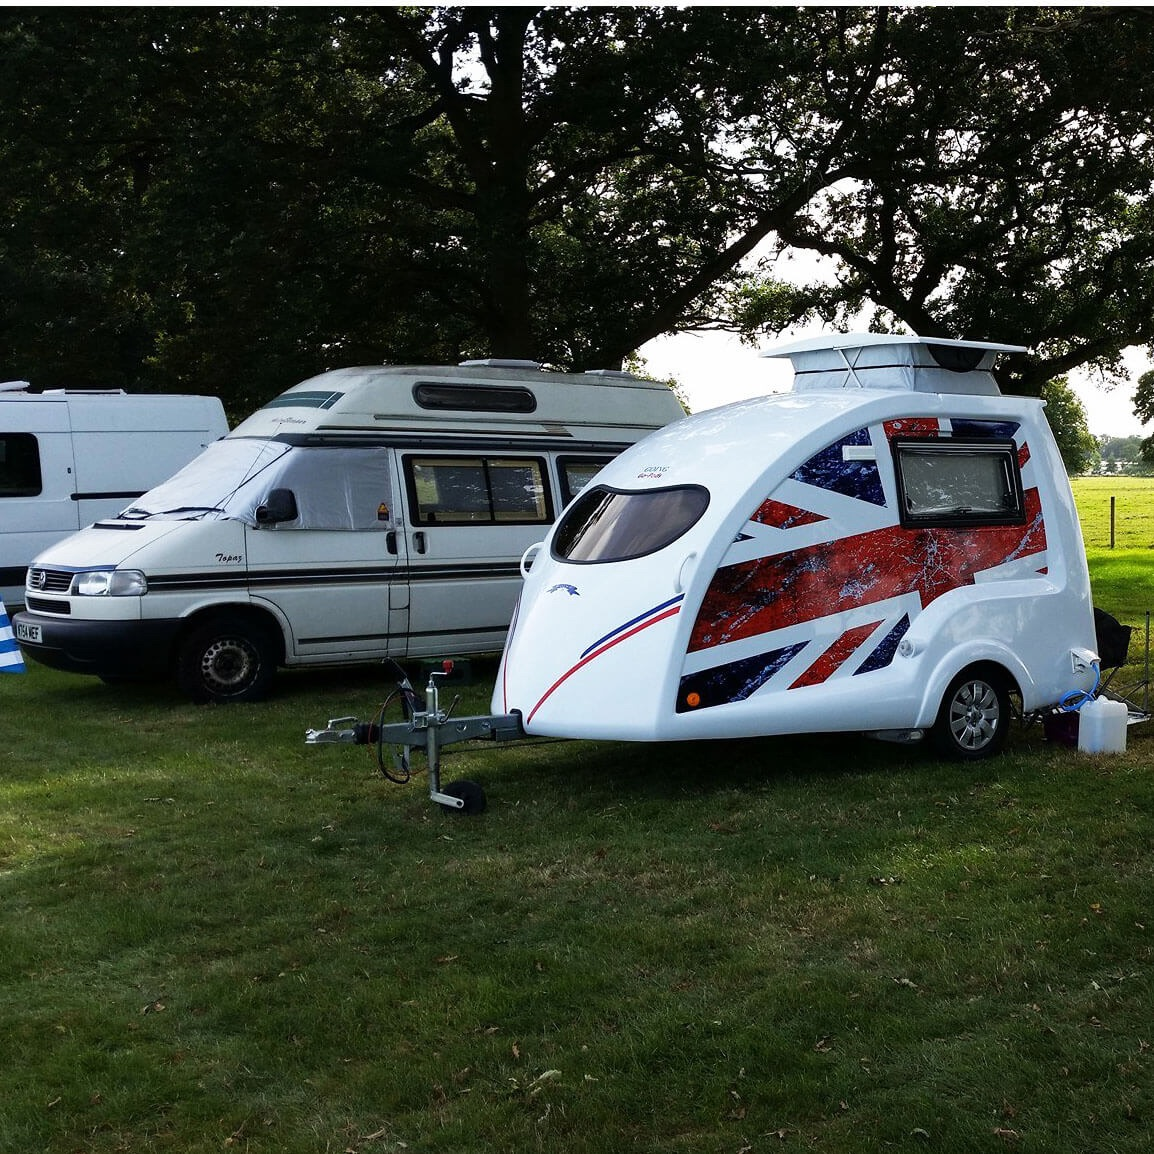 Freedom caravanning with Go-Pods 9